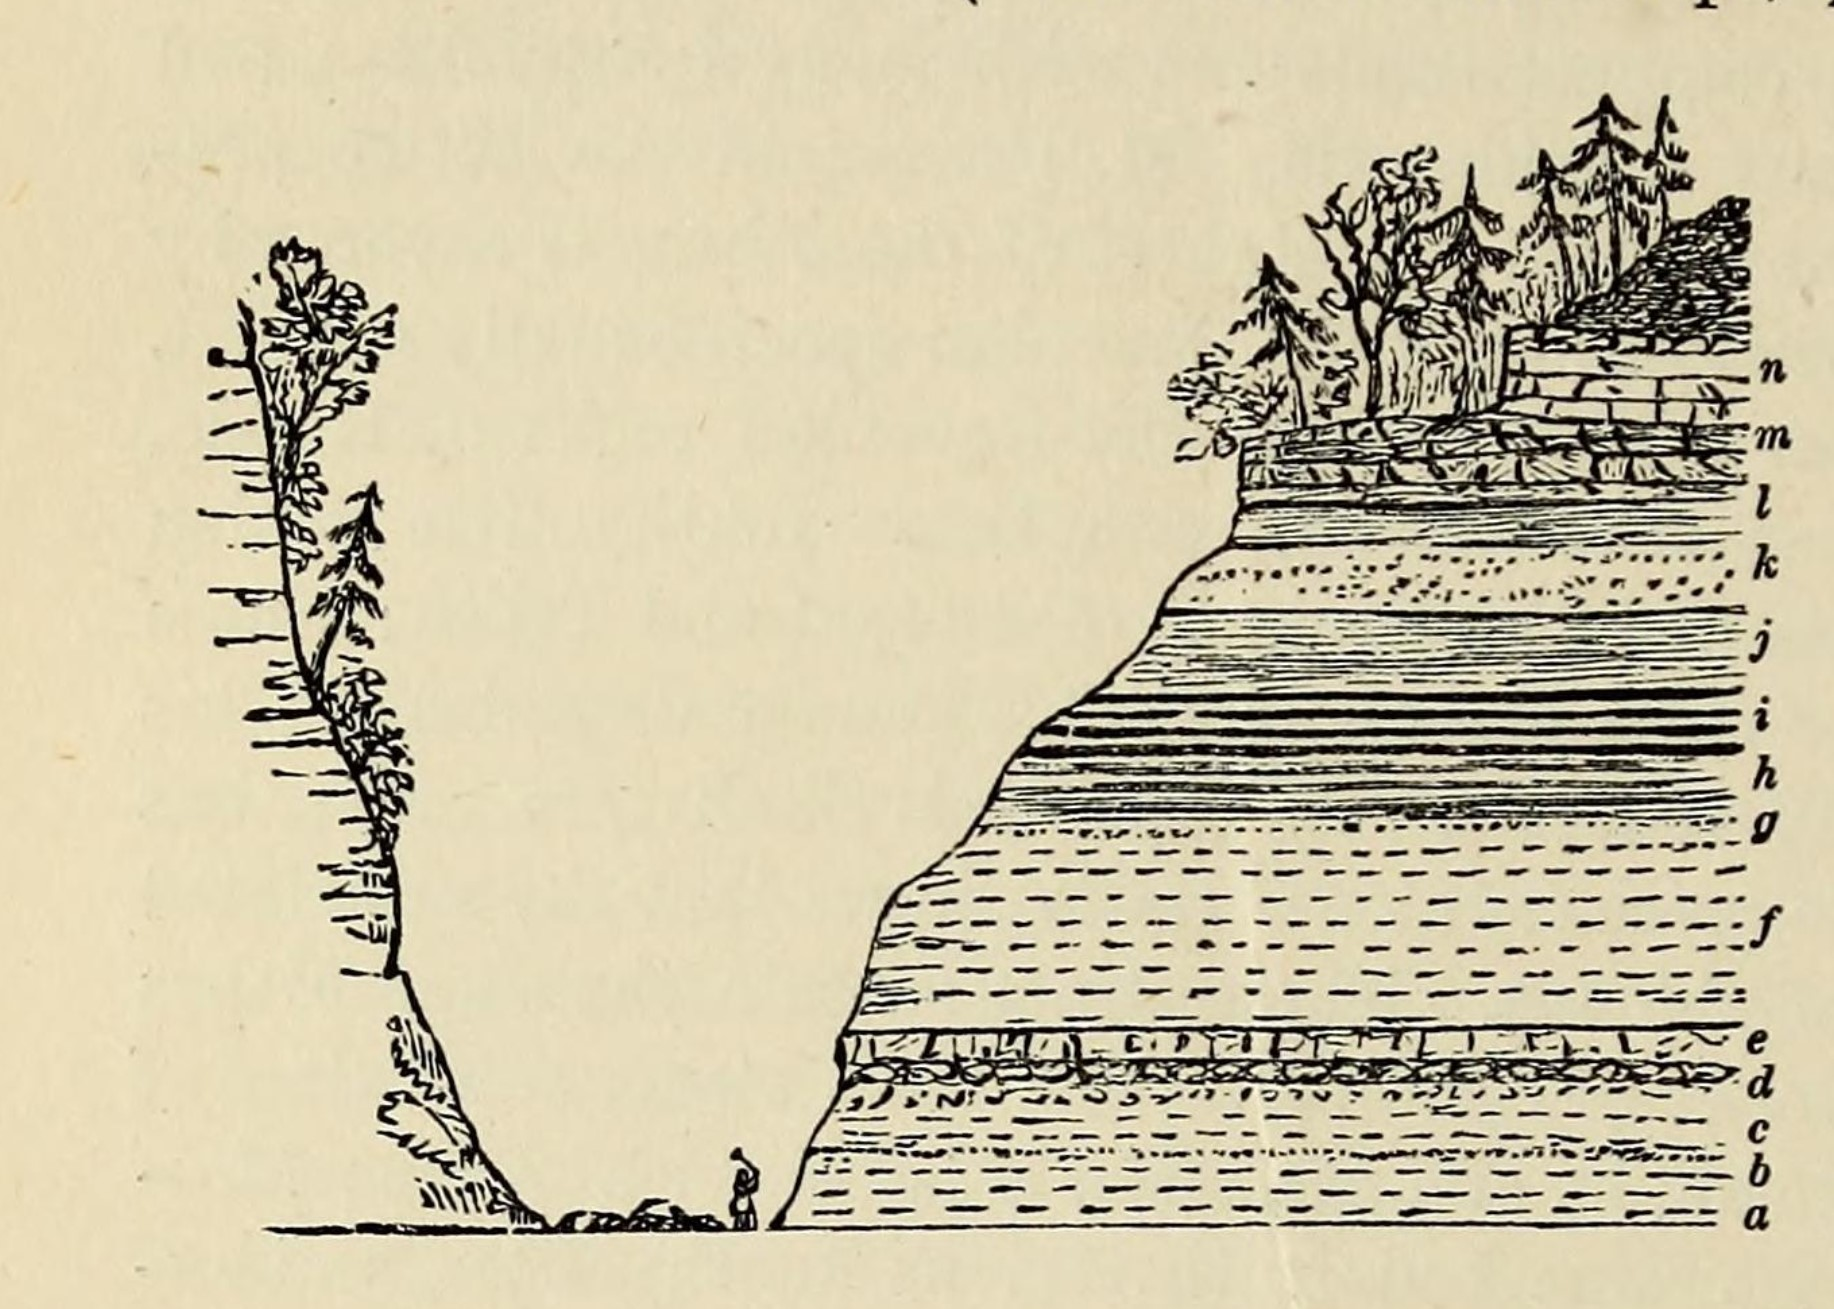 "Photo caption text: Illustration from Sir Roderick Murchison's famous book, SILURIA, published in 1859 page 364, demonstrating the principle of superposition. The sketch shows beds of horizontal sedimentary rocks stacked on top of each other. The bed at the bottom of the sequence (""a"") was deposited first, and therefore is the oldest bed in the sequence. Bed ""n"" is the youngest bed. Note the person in the stream valley for scale."